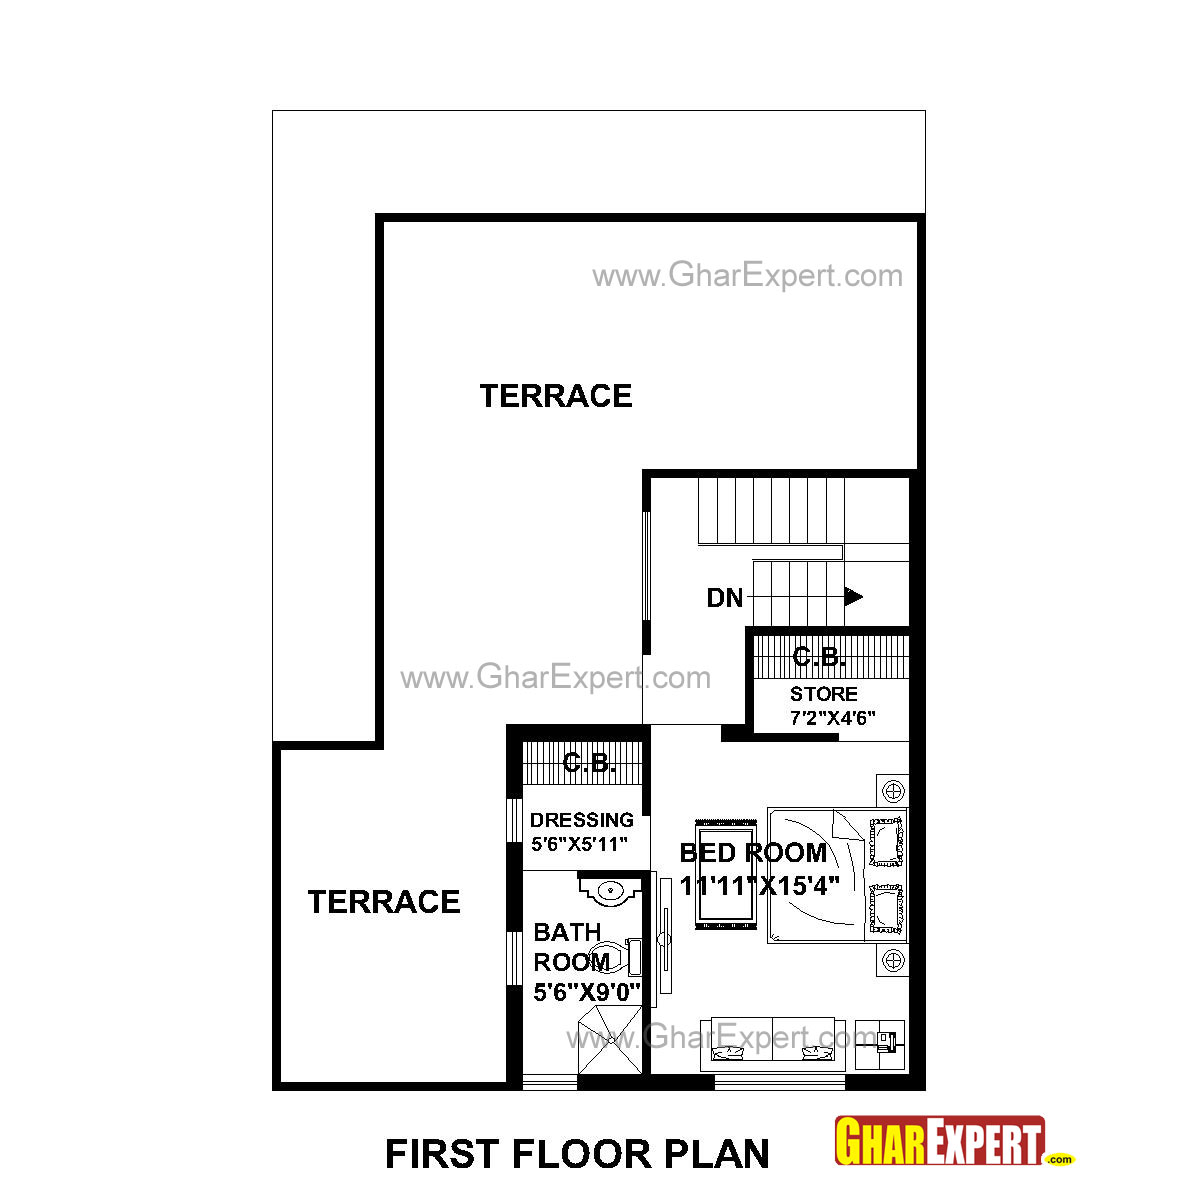 House Plan for 30 Feet by 45 Feet plot (Plot Size 150 Square